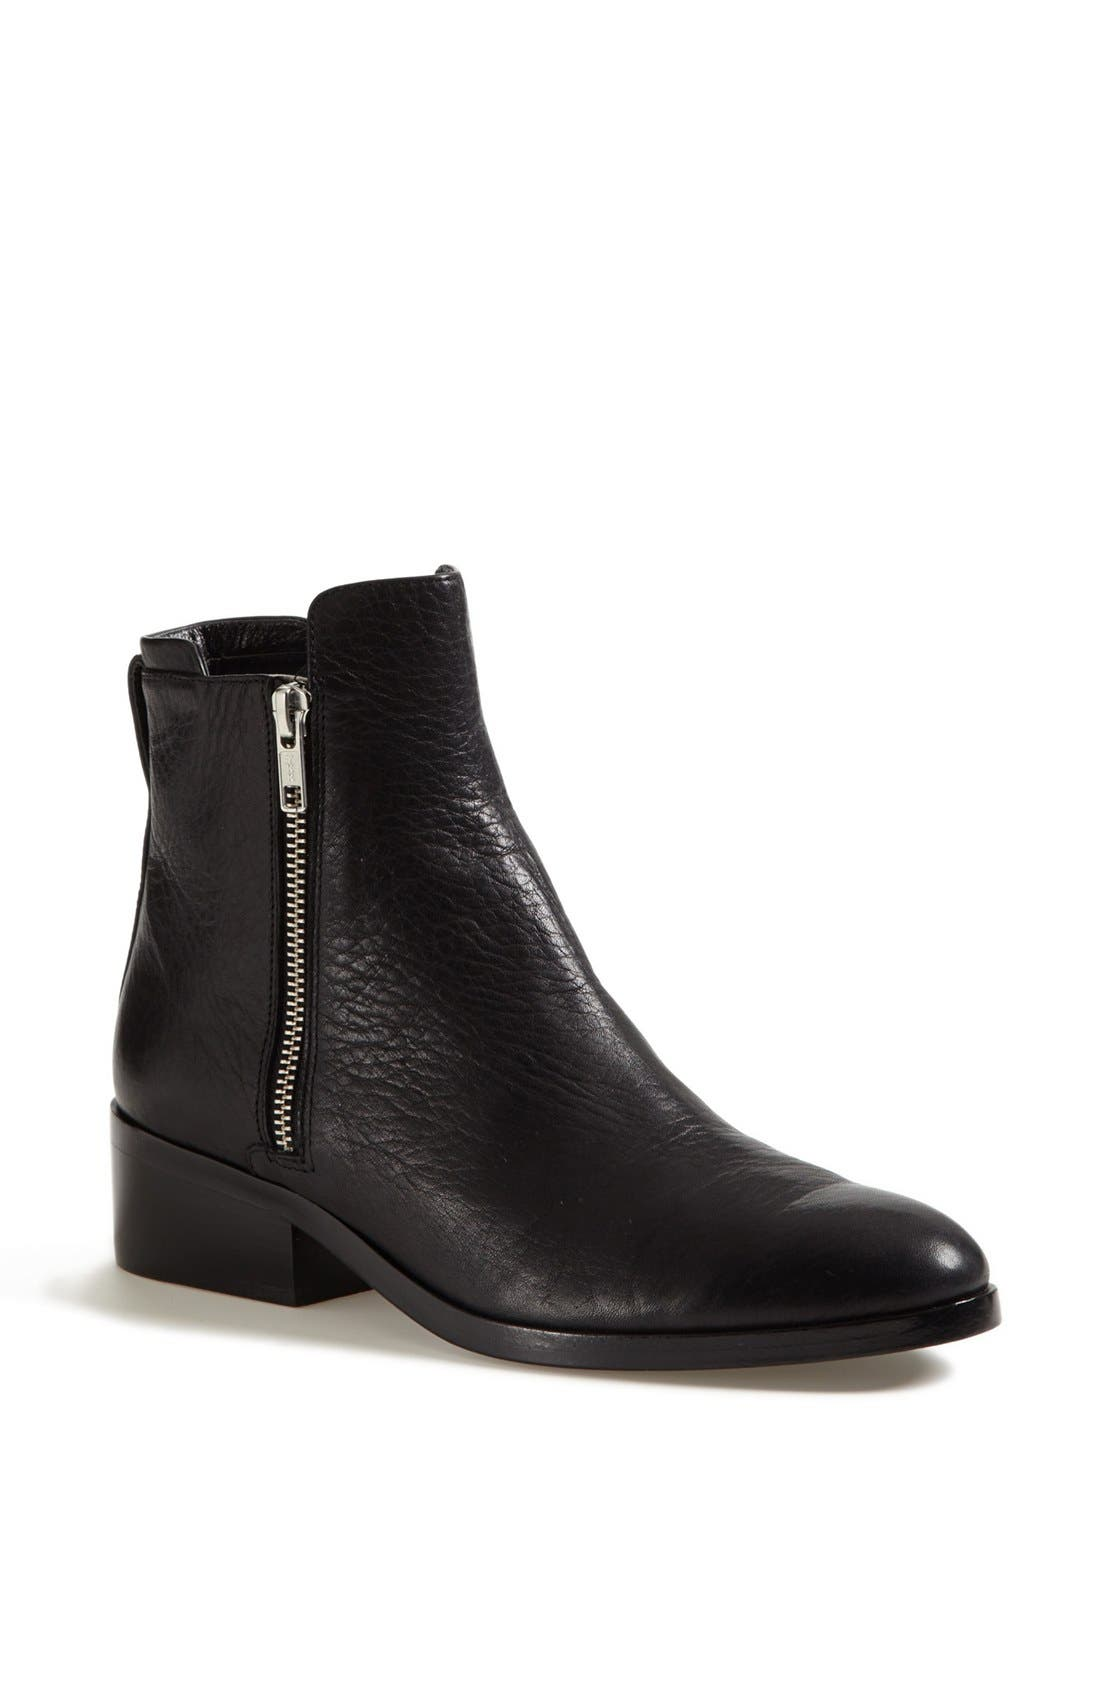 3.1 Phillip Lim 'Alexa' Boot